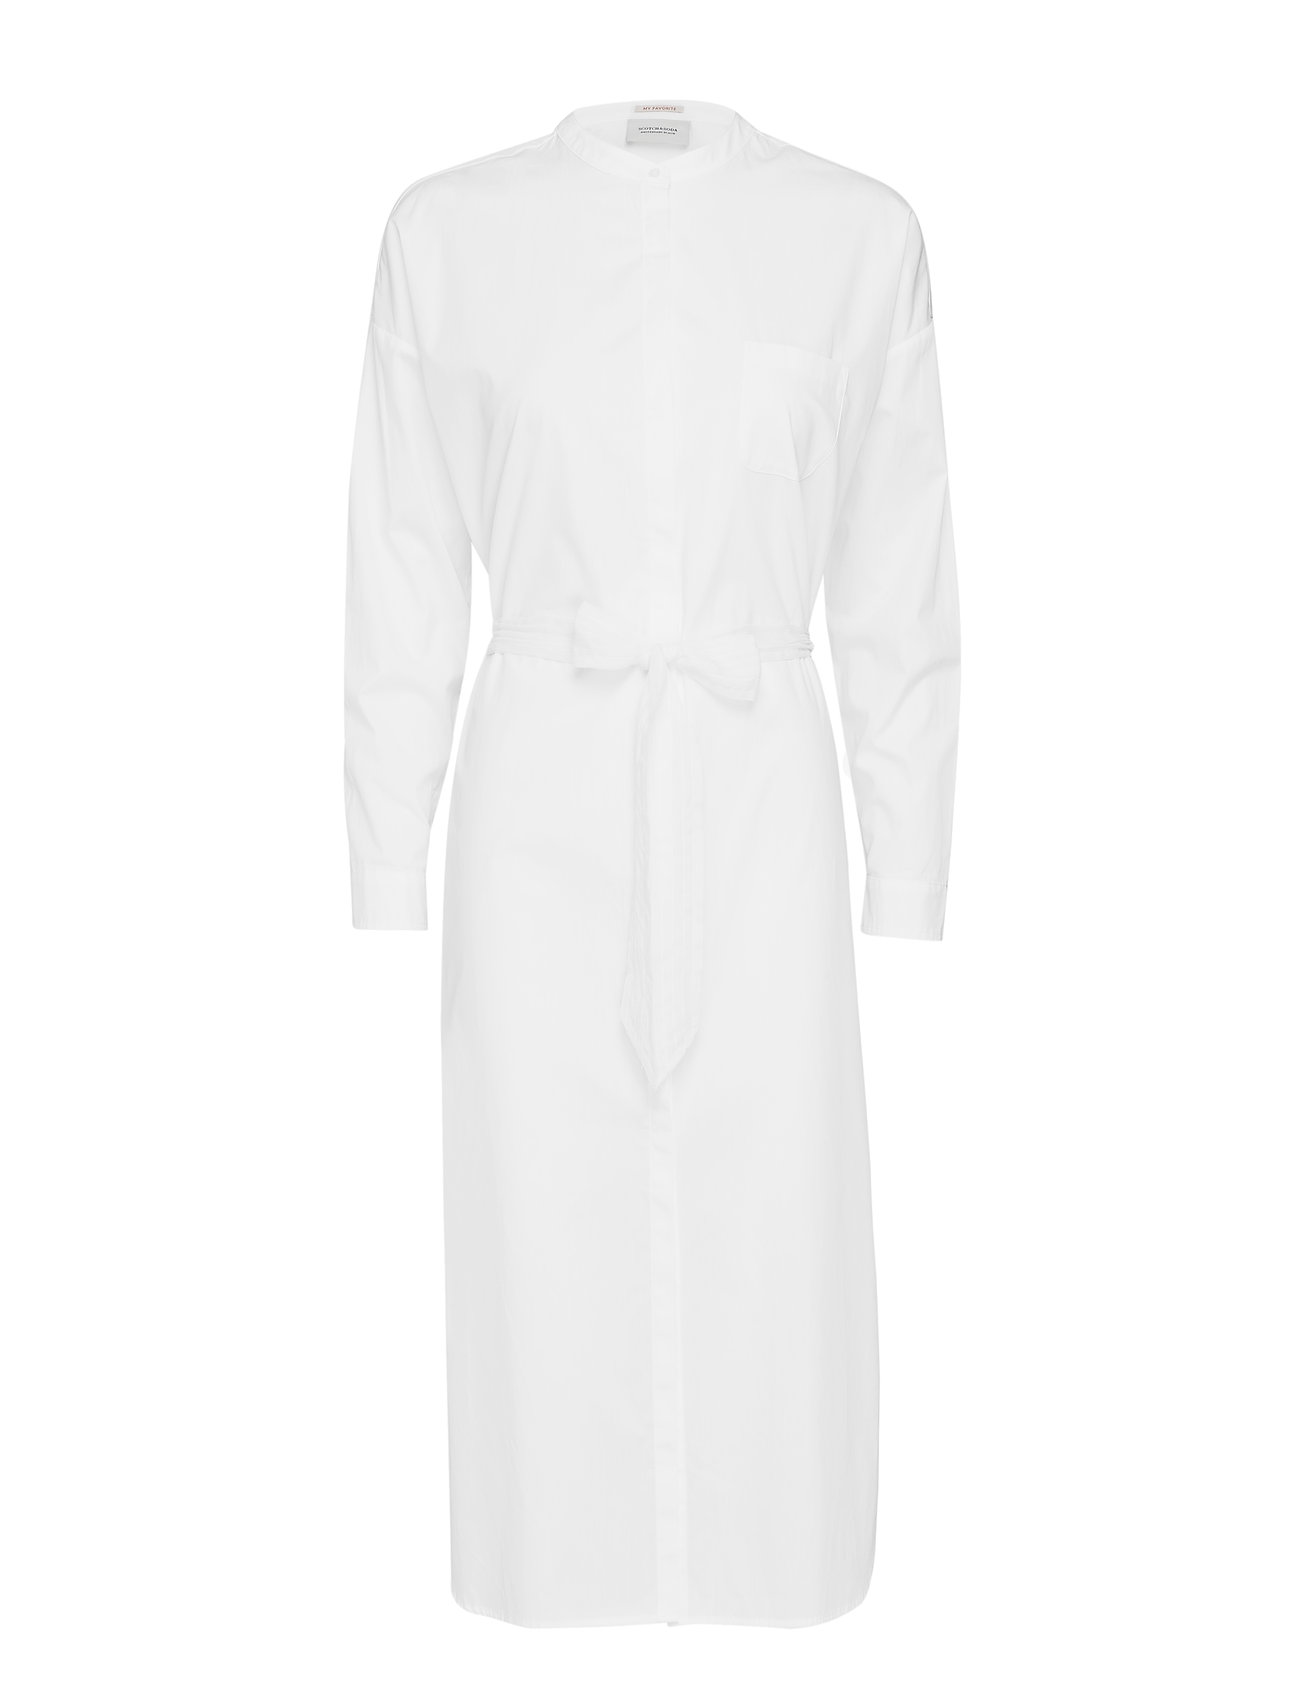 Scotch & Soda Longer length shirt dress - WHITE